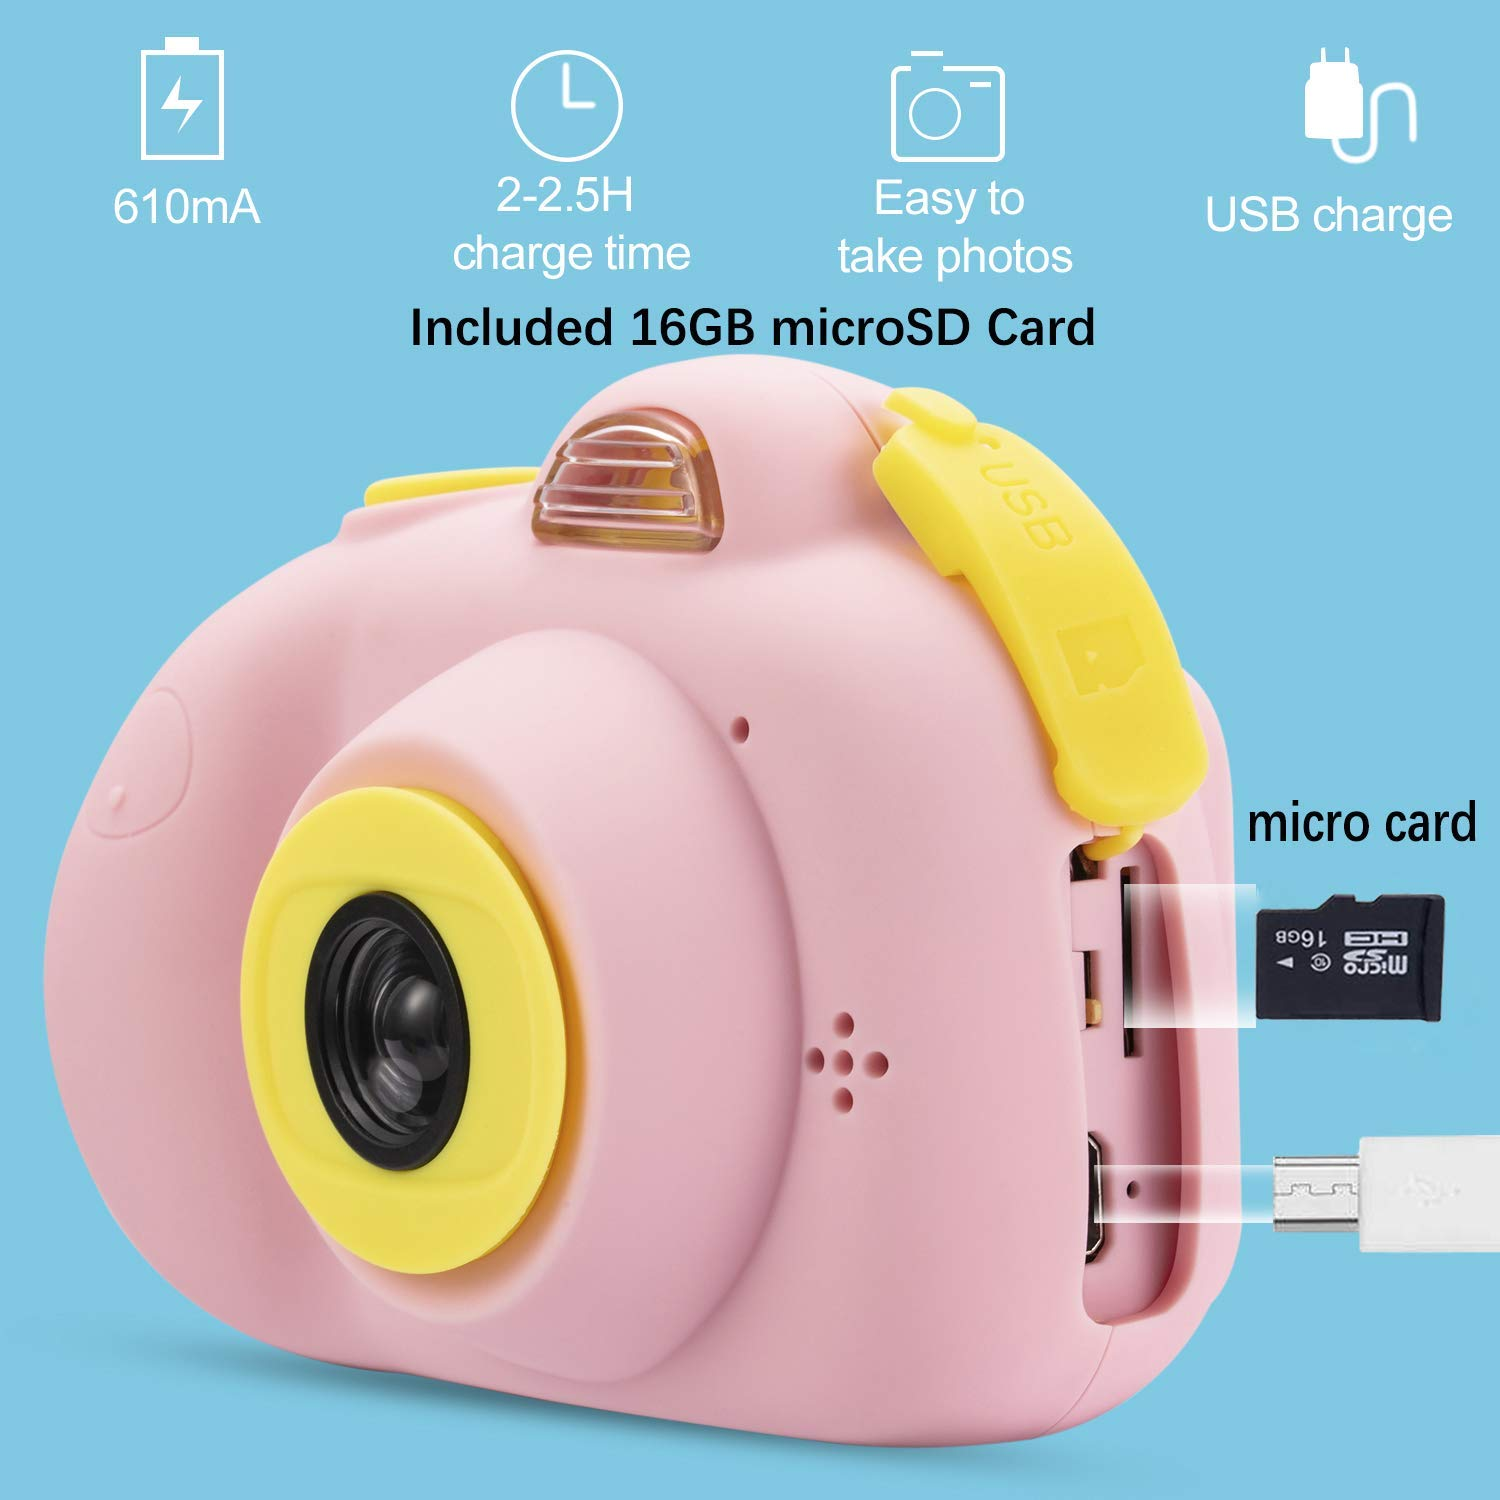 Kids Camera, Dual Cameras 8MP Rechargeable 1080p HD Kids Video Cameras Shockproof Kids Digital Cameras - Best Gift for 4-10 Years Old Girls Boys Party Outdoor Play 16GB TF Card Included (Pink) by Egoelife (Image #3)